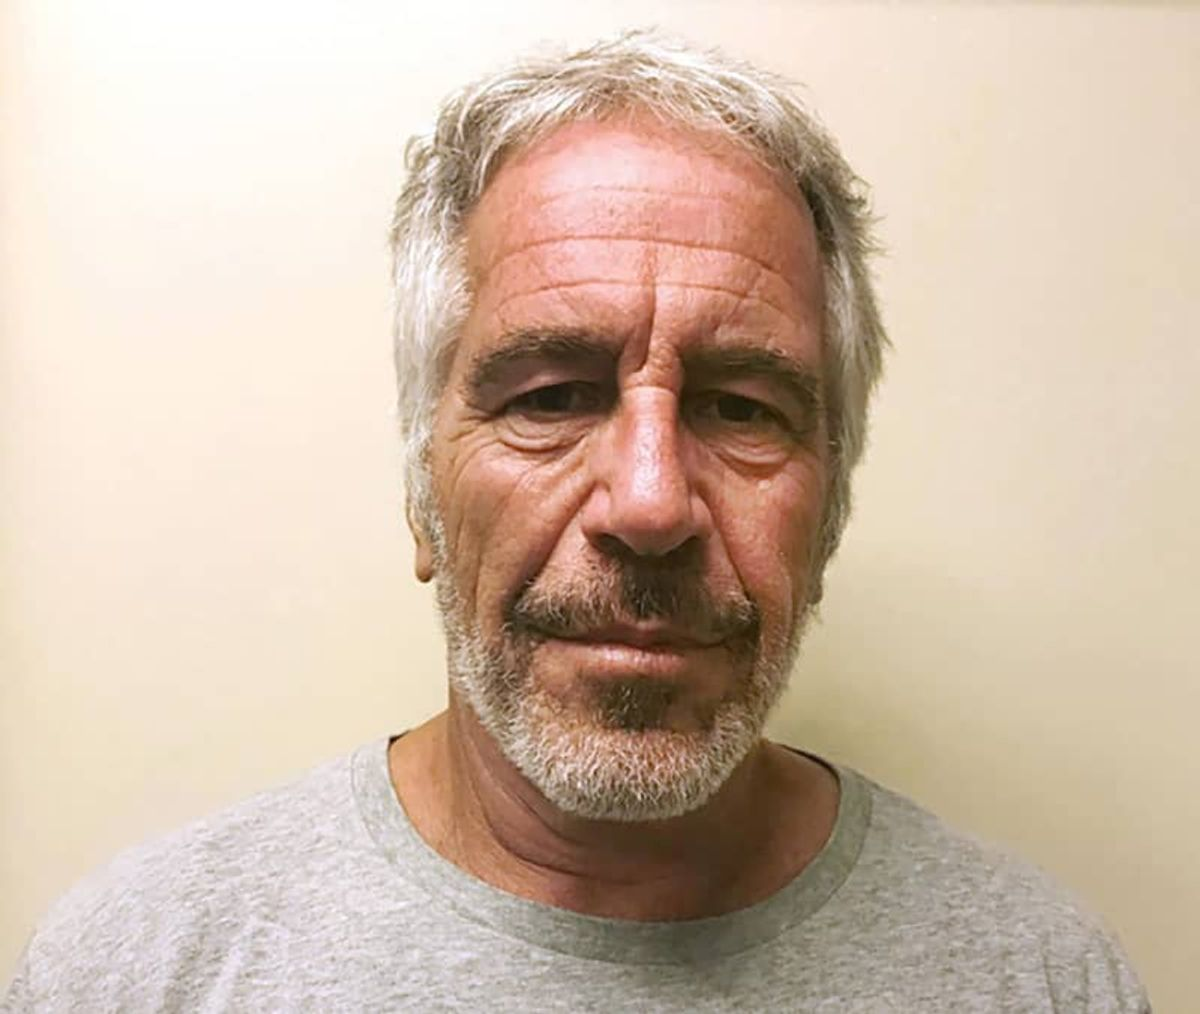 Billionaire Jeffrey Epstein benefactor steps down as CEO of massive private equity firm: report